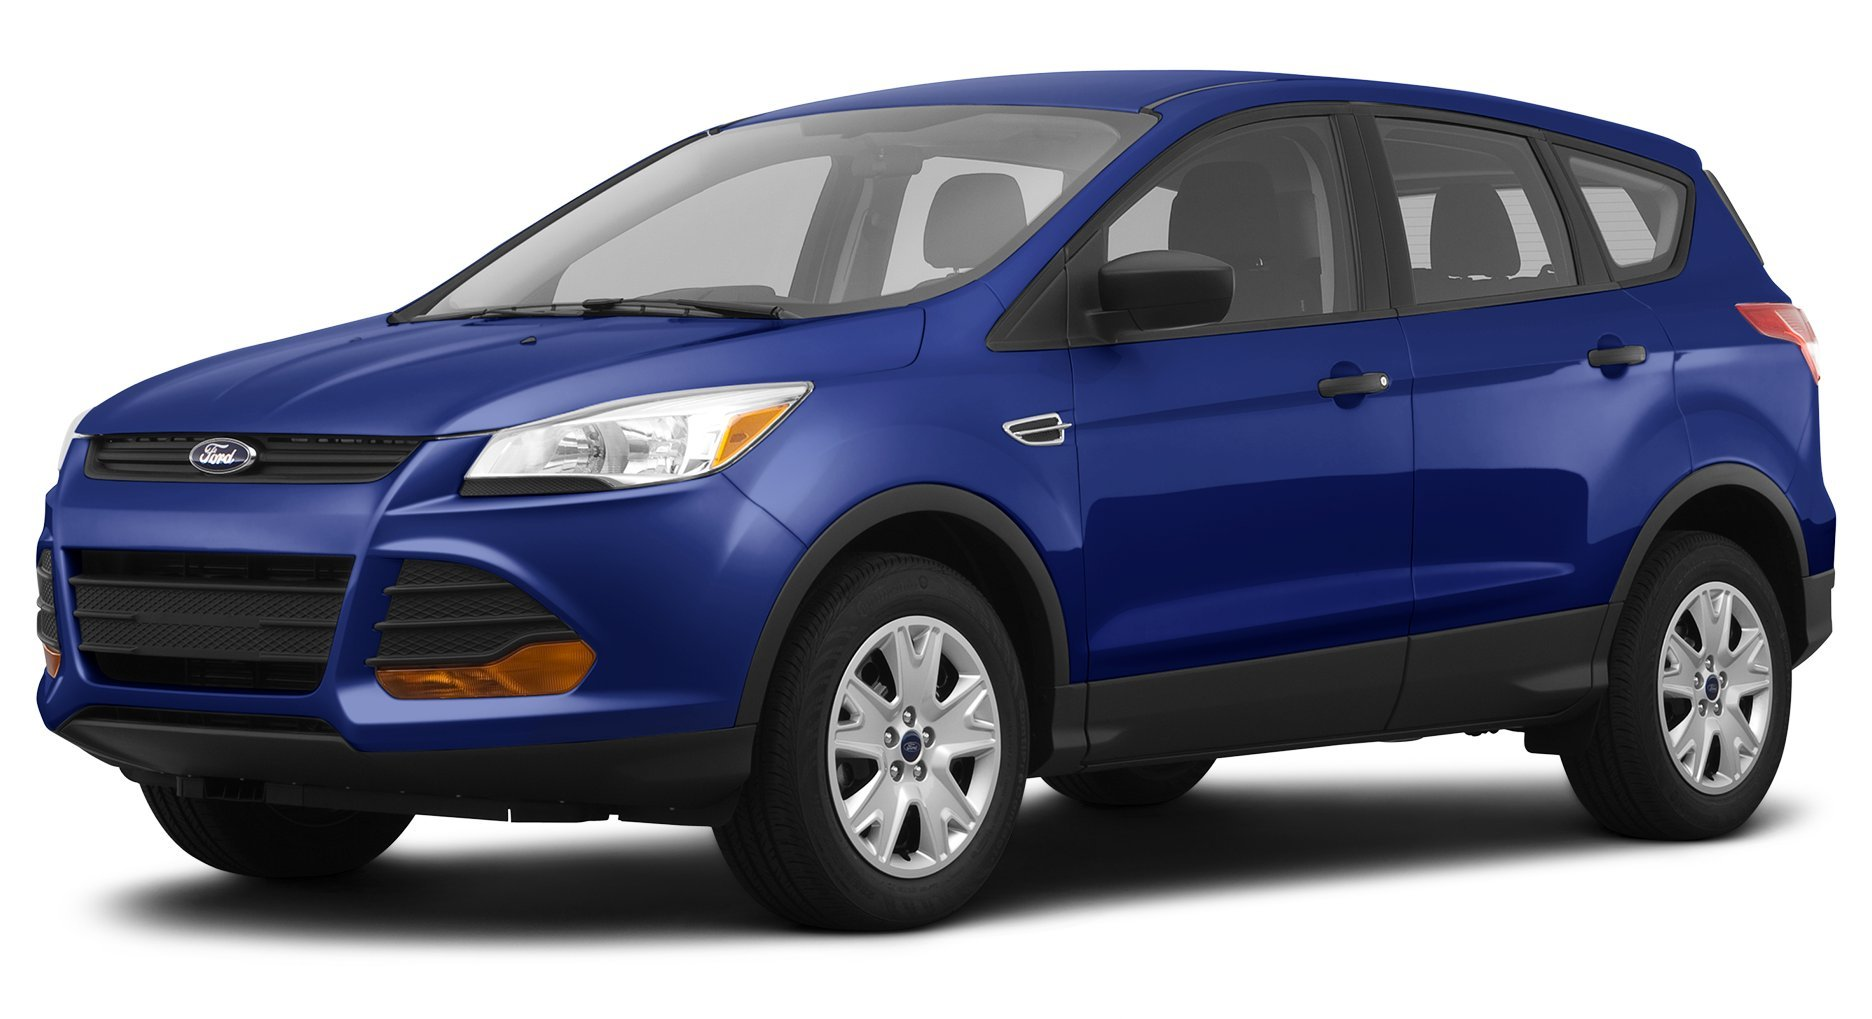 2013 ford escape reviews images and specs vehicles. Black Bedroom Furniture Sets. Home Design Ideas